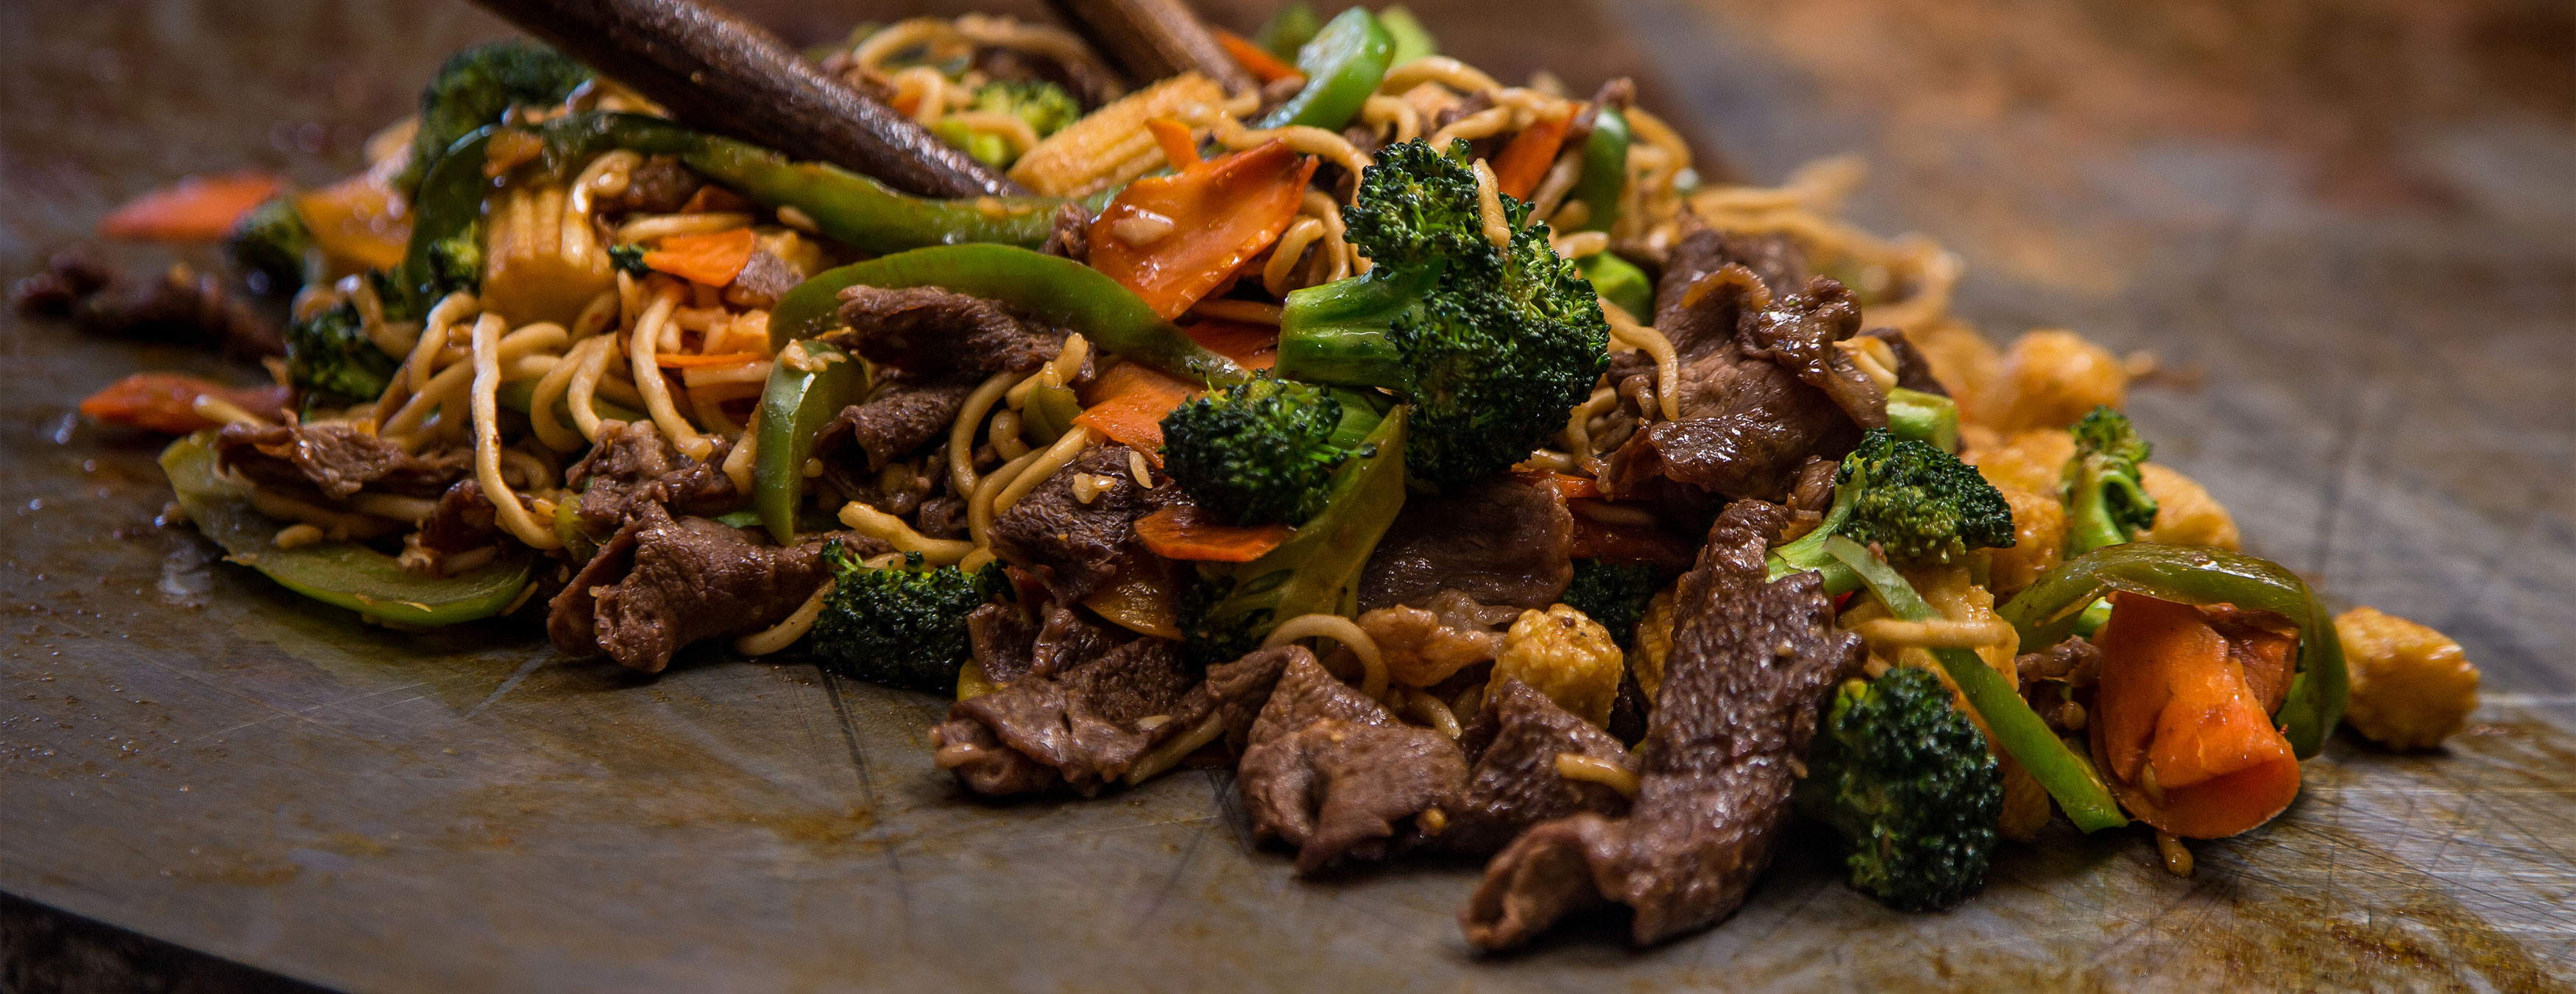 Noodles, veggies, and beef on the grill